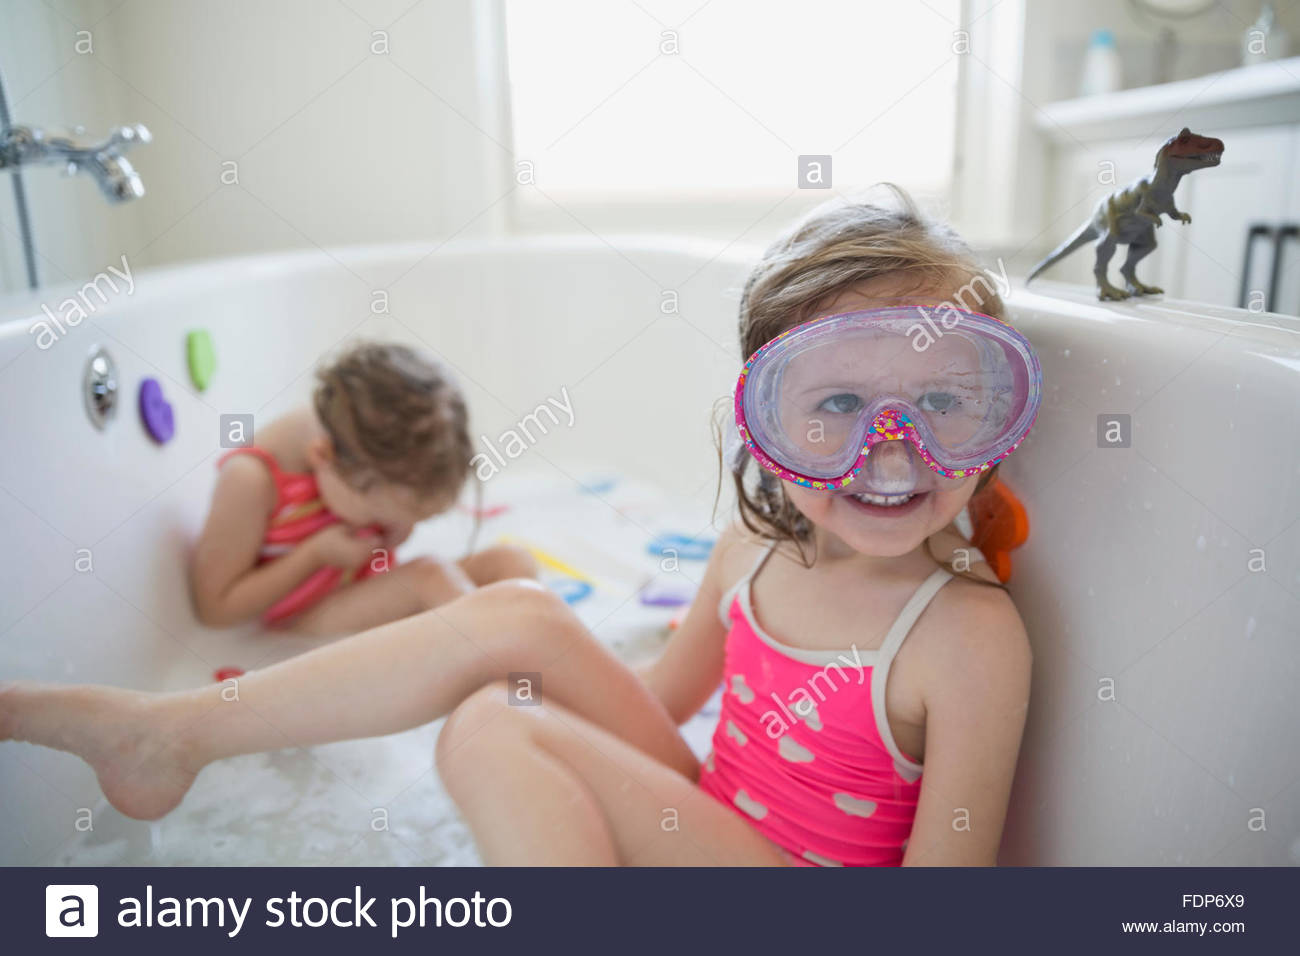 Girl bathing suit and goggles playing bath Stock Photo: 94530753 - Alamy